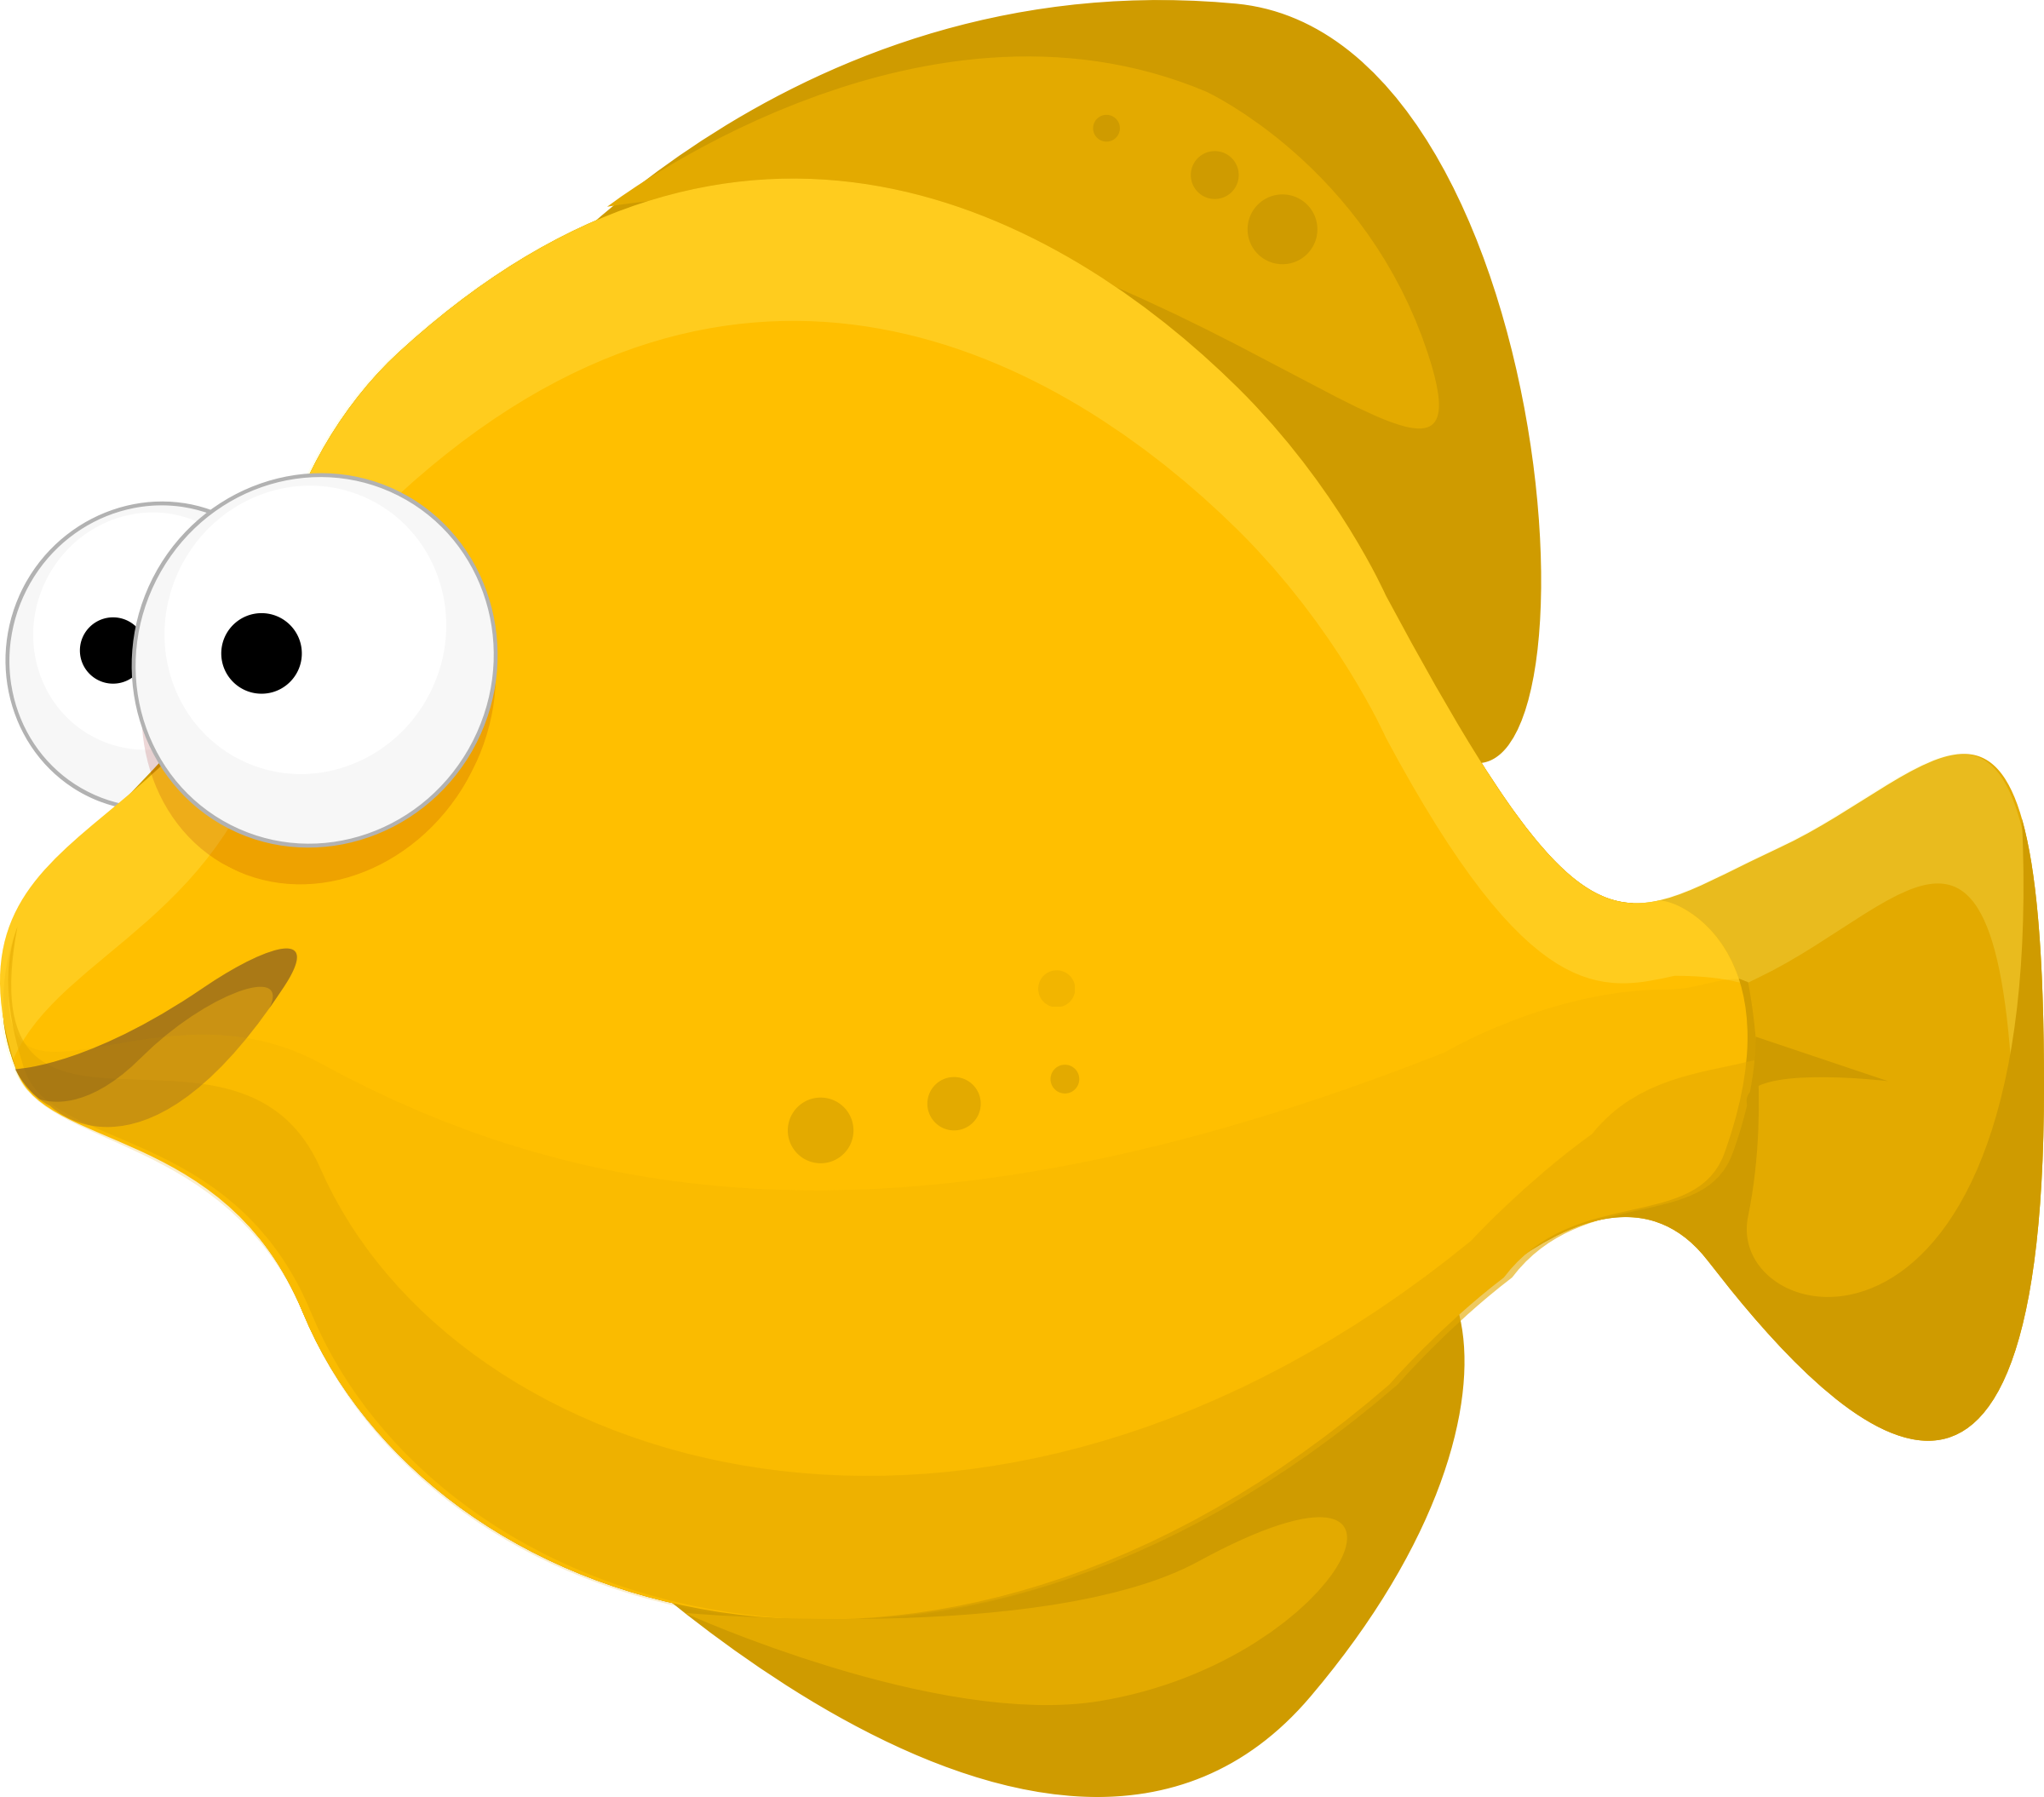 Yellow Fish Cartoon Vector Clipart image.